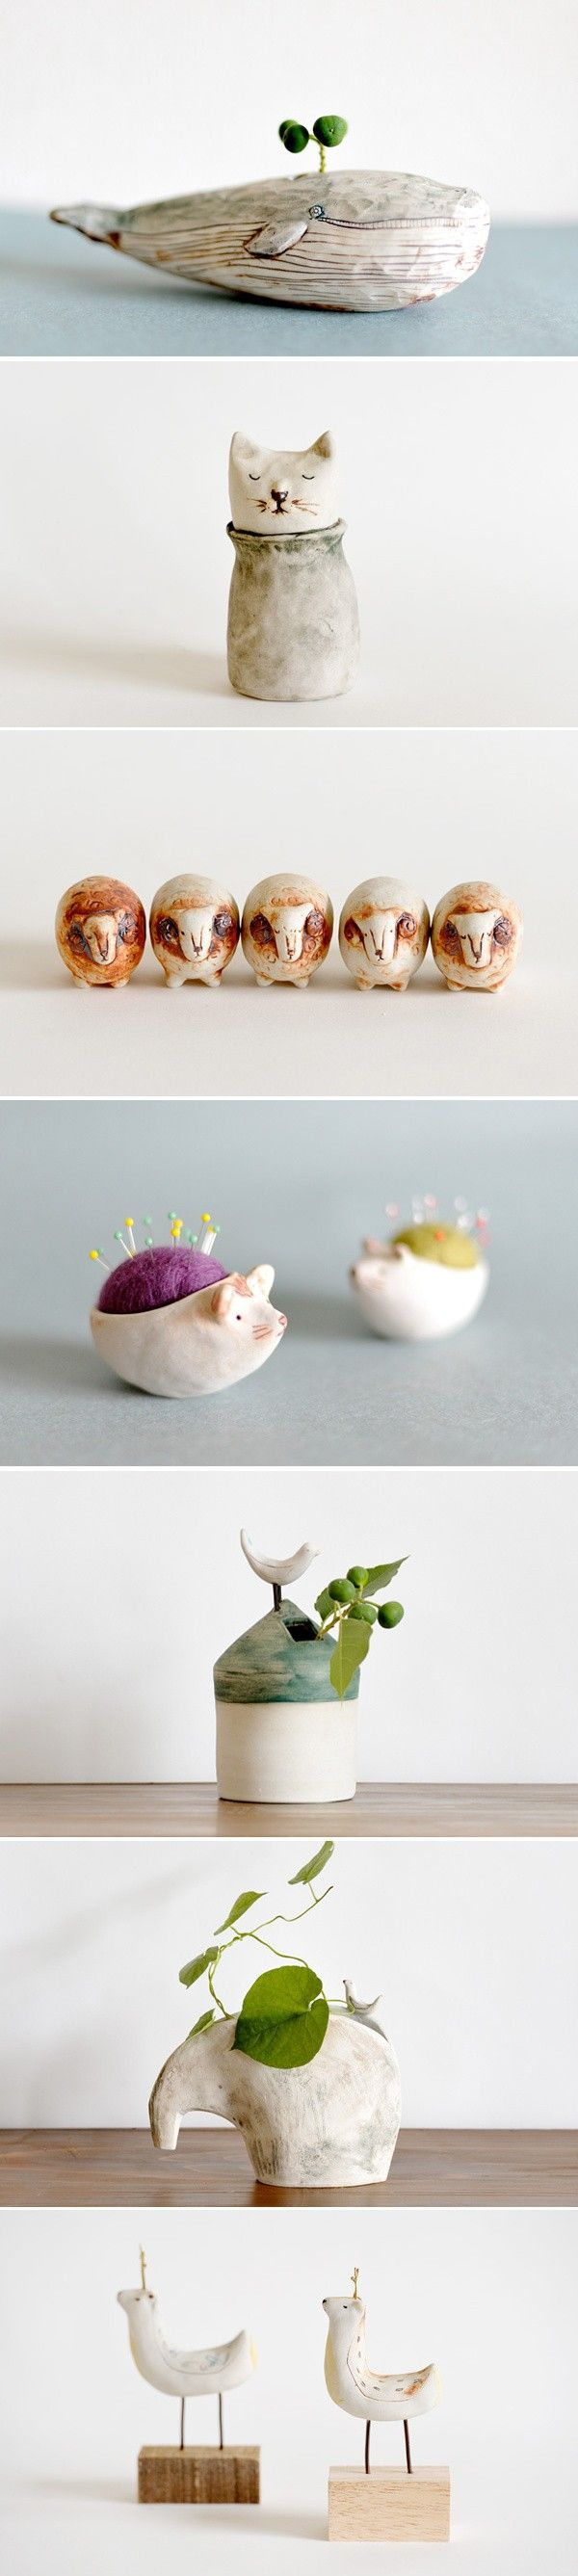 couple good ideas here, make clay sculpture for vase, or pincushion with felted inside